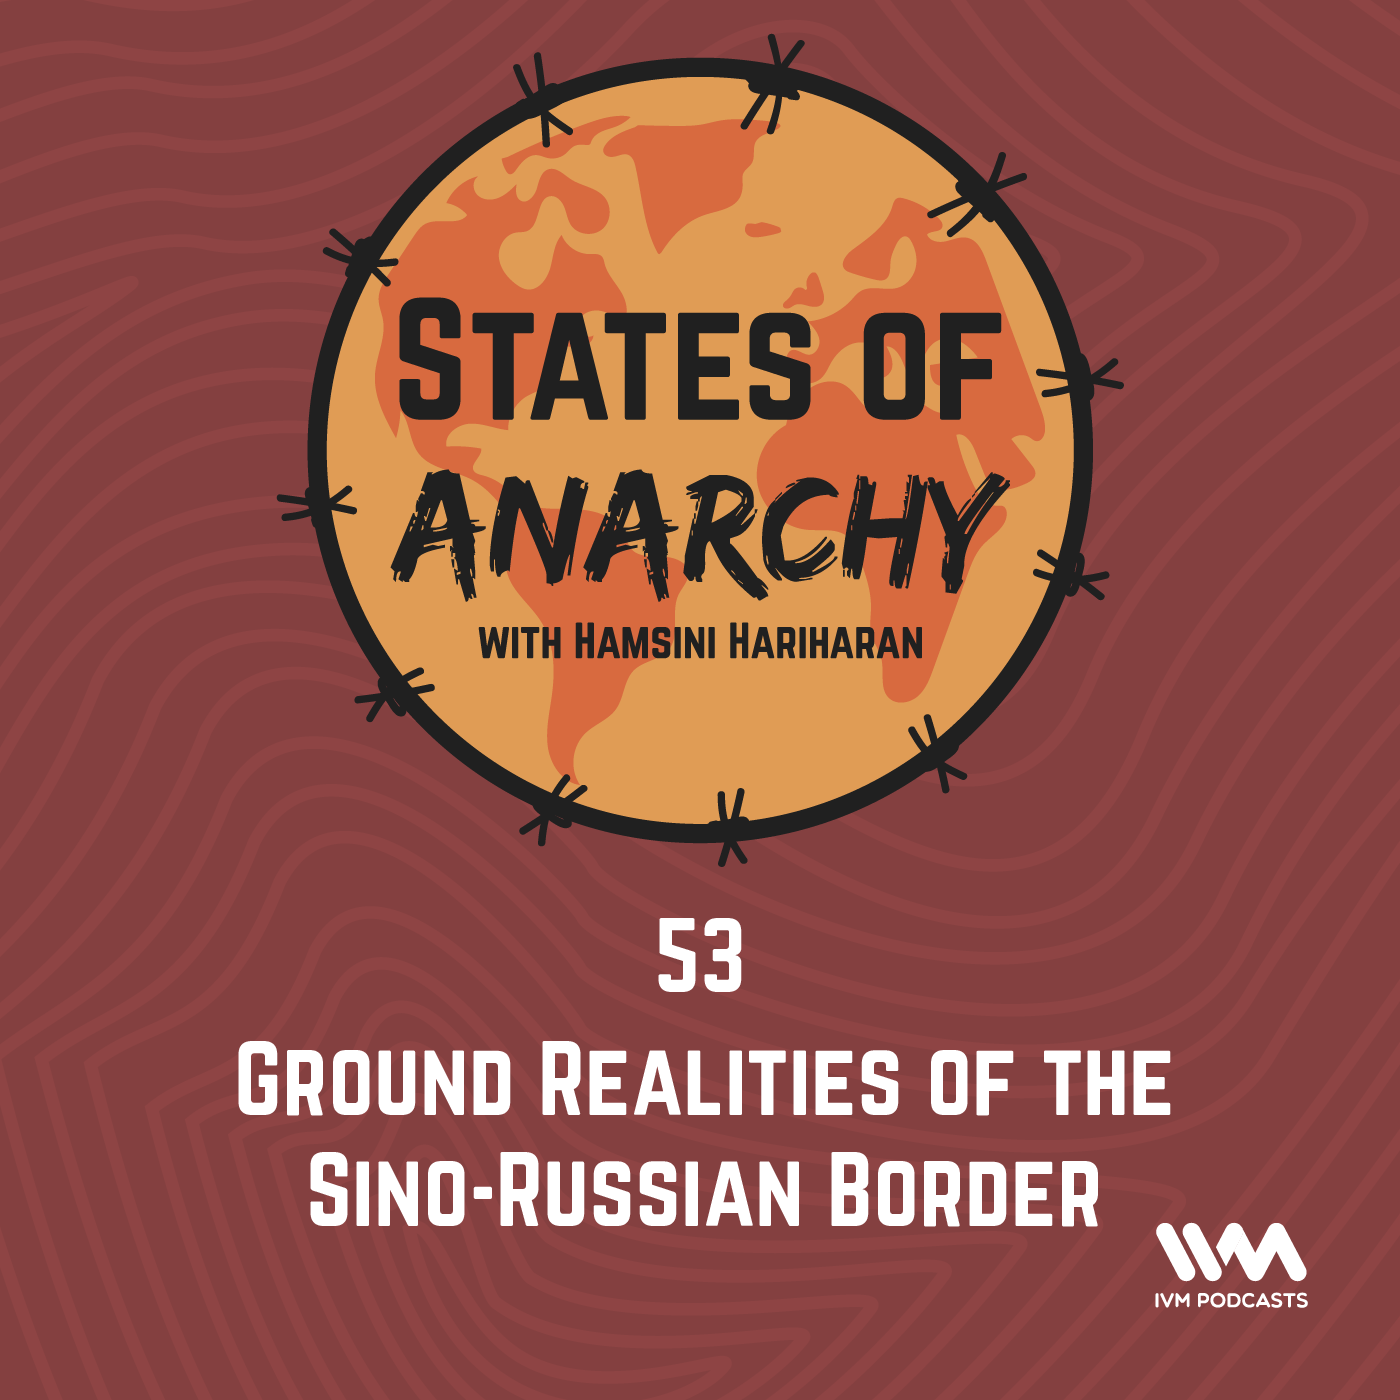 Ep. 53: Ground Realities of the Sino-Russian Border